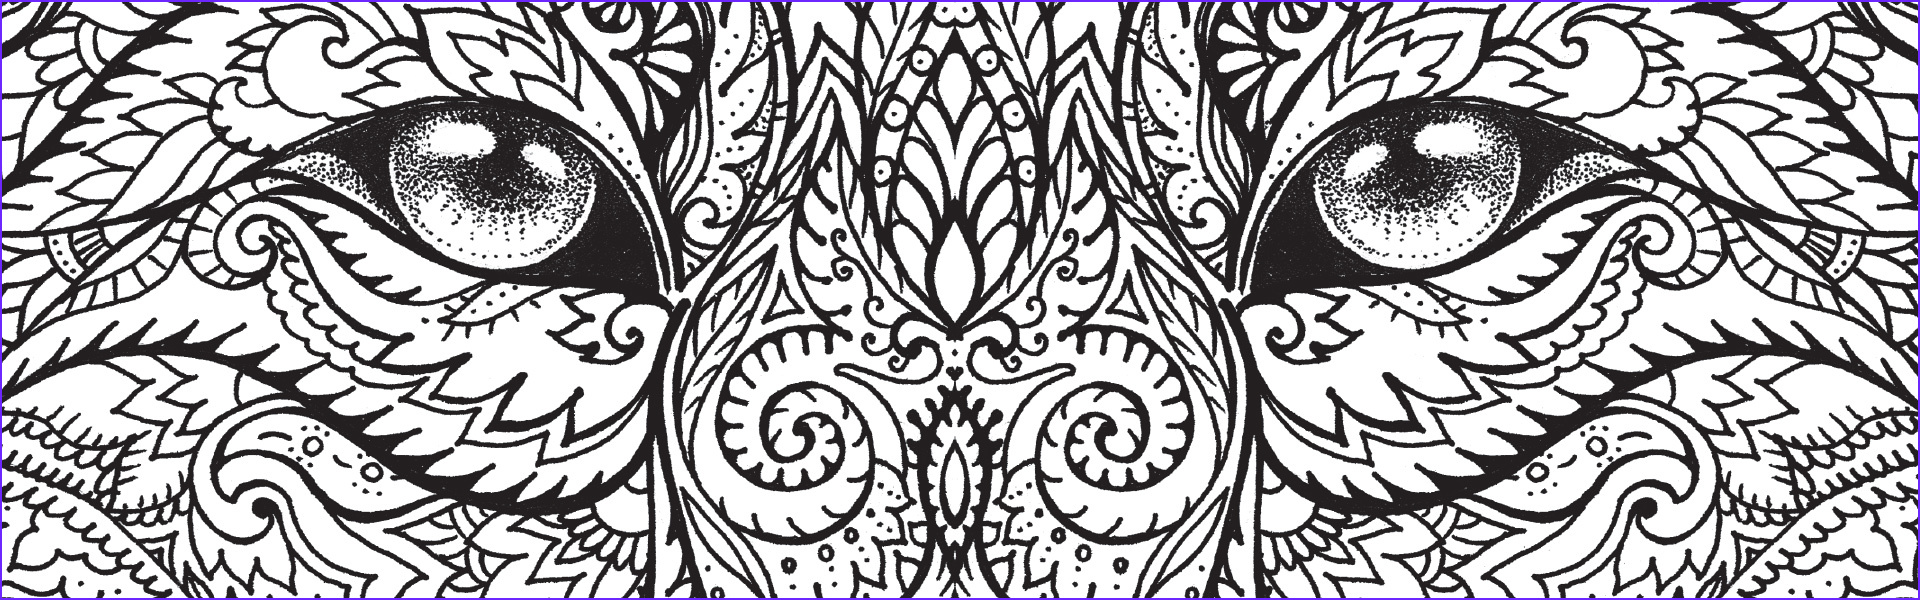 Coloring Images for Adults Awesome Photos the Macmillan Jungle Book Colouring Book Free Wolf Pattern